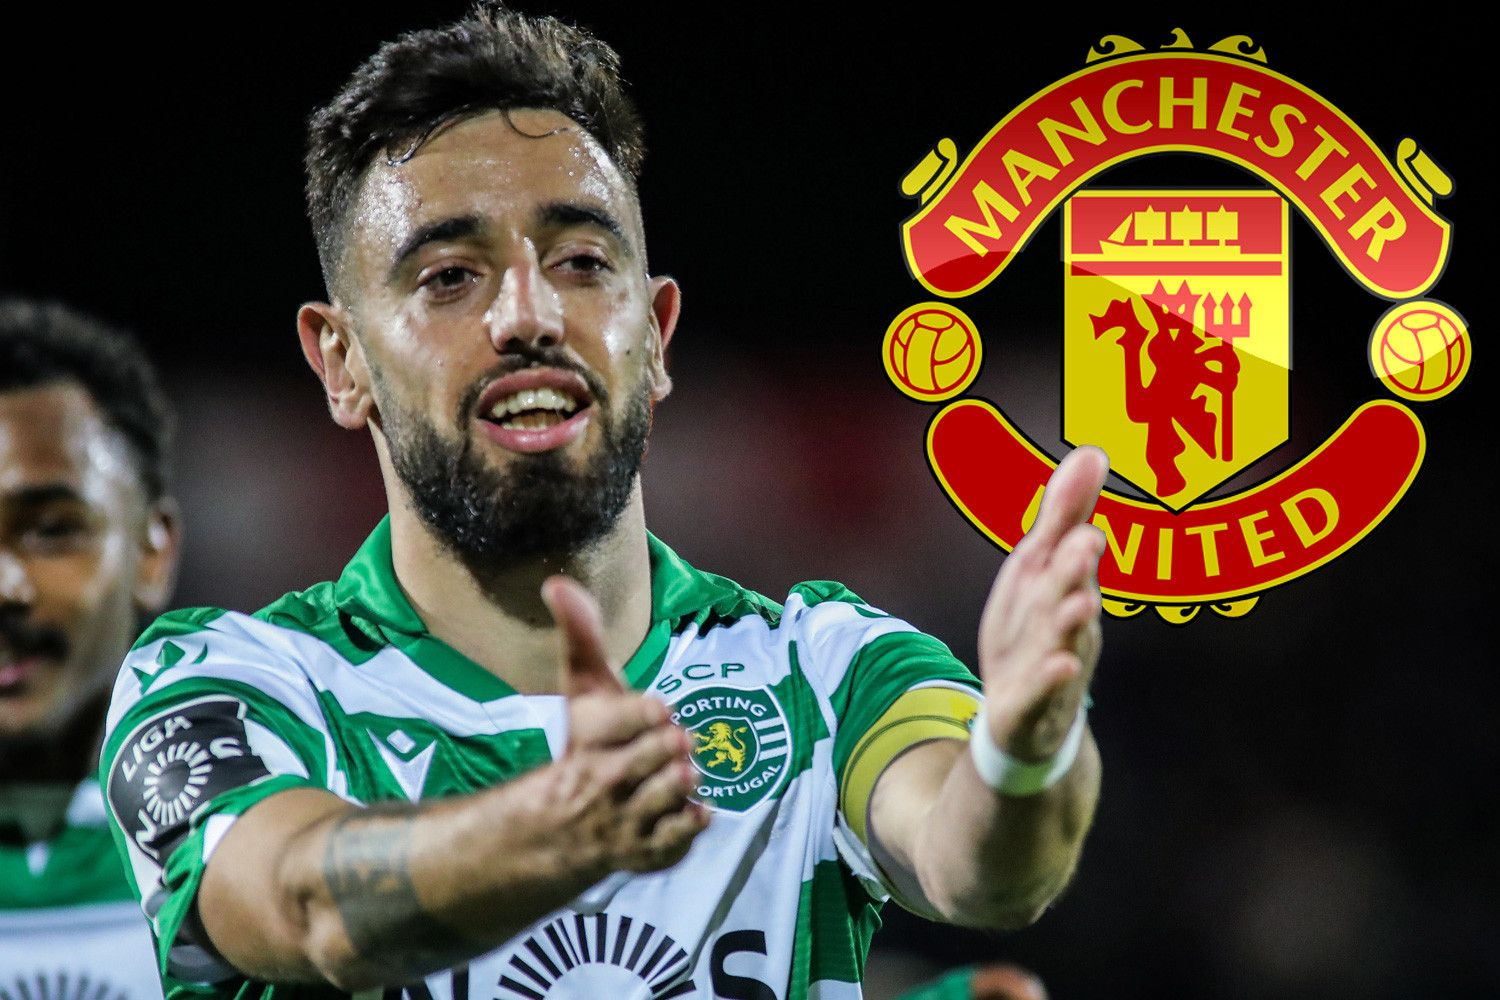 Man Utd to seal Bruno Fernandes transfer tonight with 51m fee agreed and will travel to UK after Sporting Lisbon game